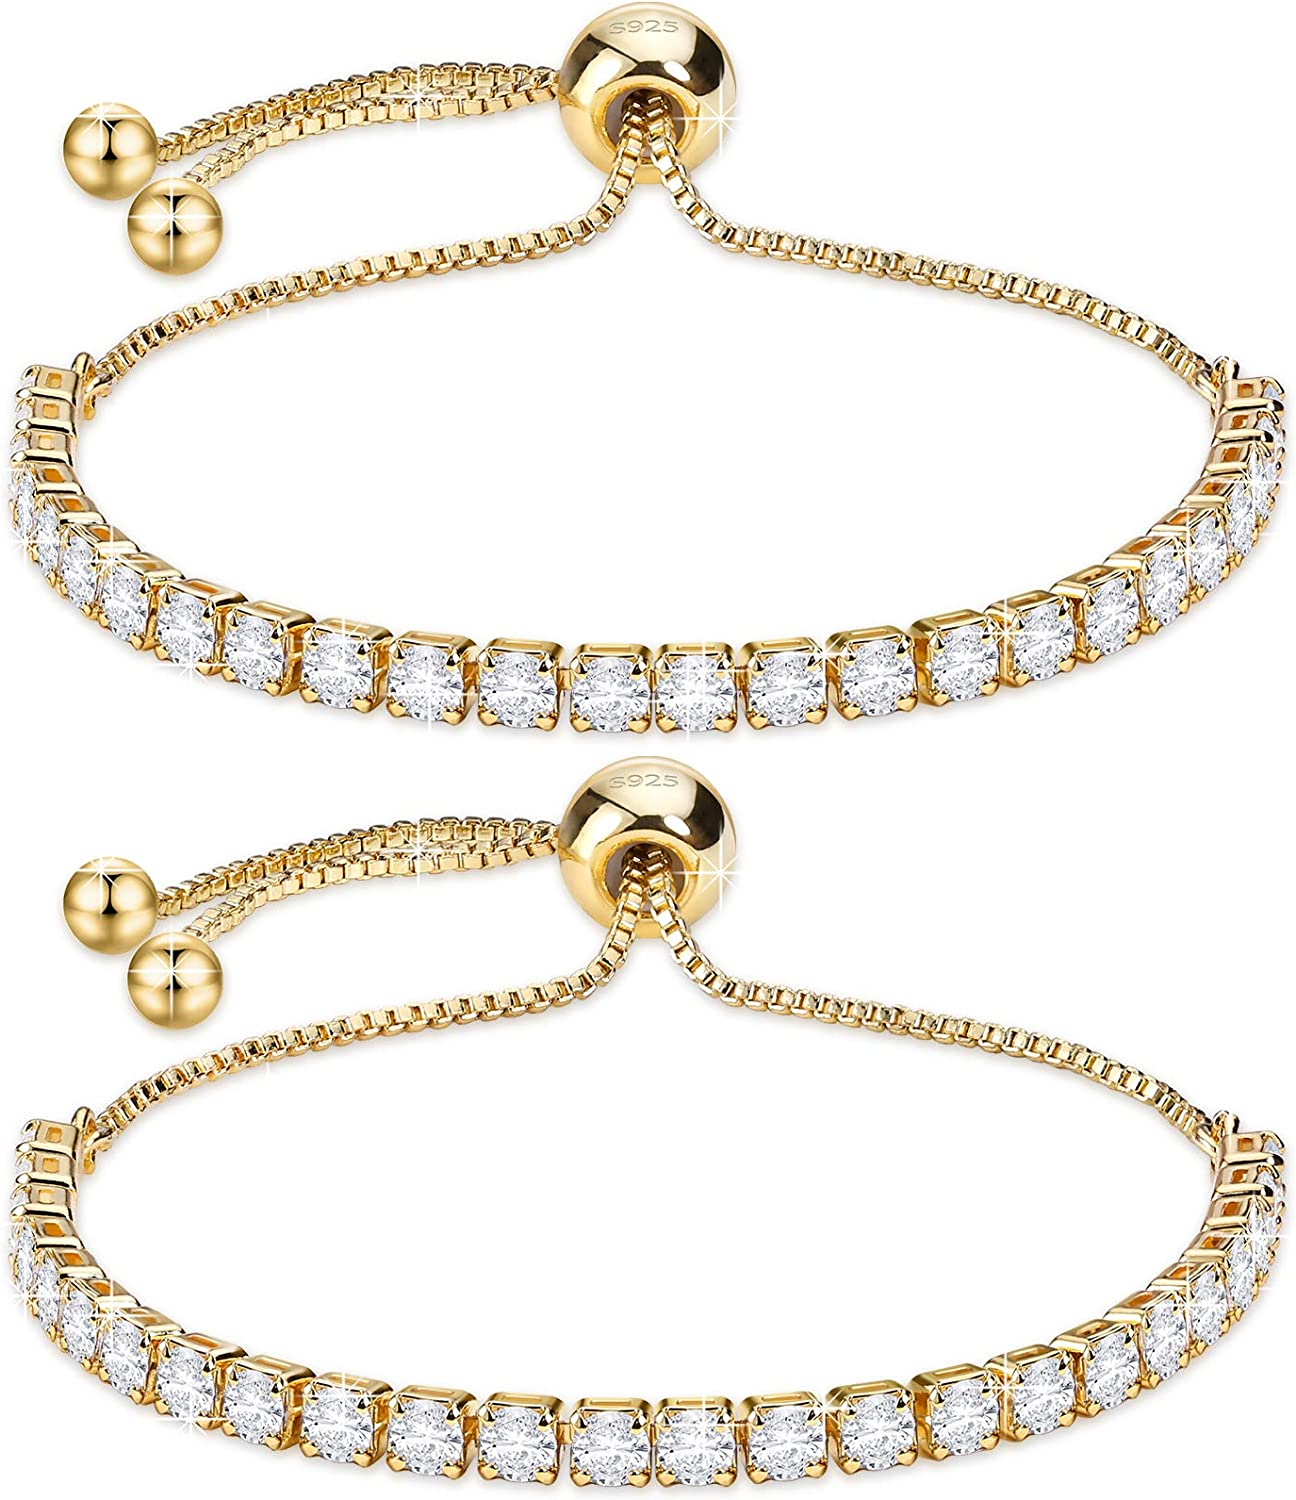 J.Fée Max 59% OFF Sterling Silver Bracelet Tennis S925 Spa with outlet